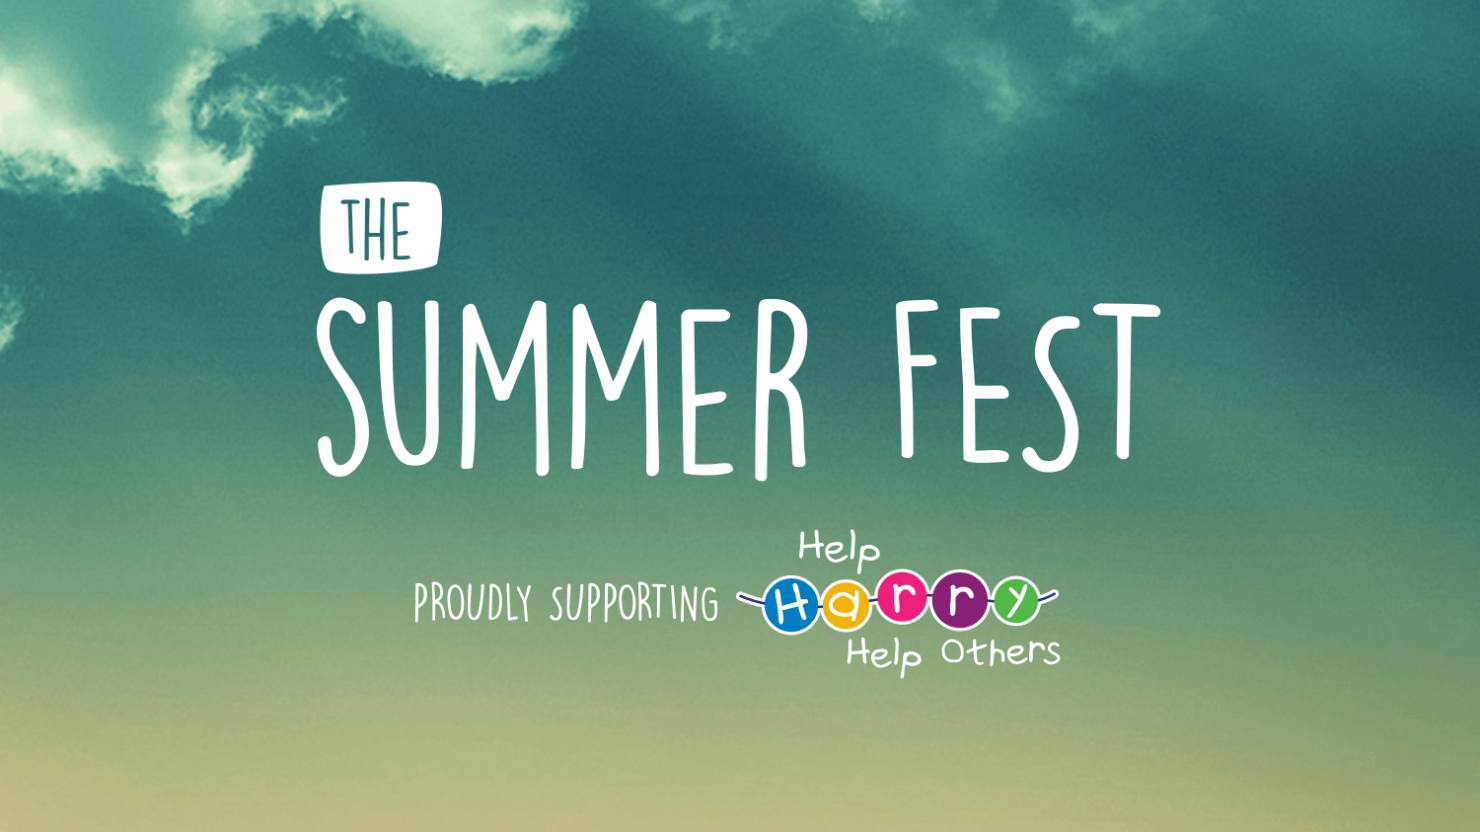 Logo design for Solihull Summerfest Music festival event in Tudor Grange Park